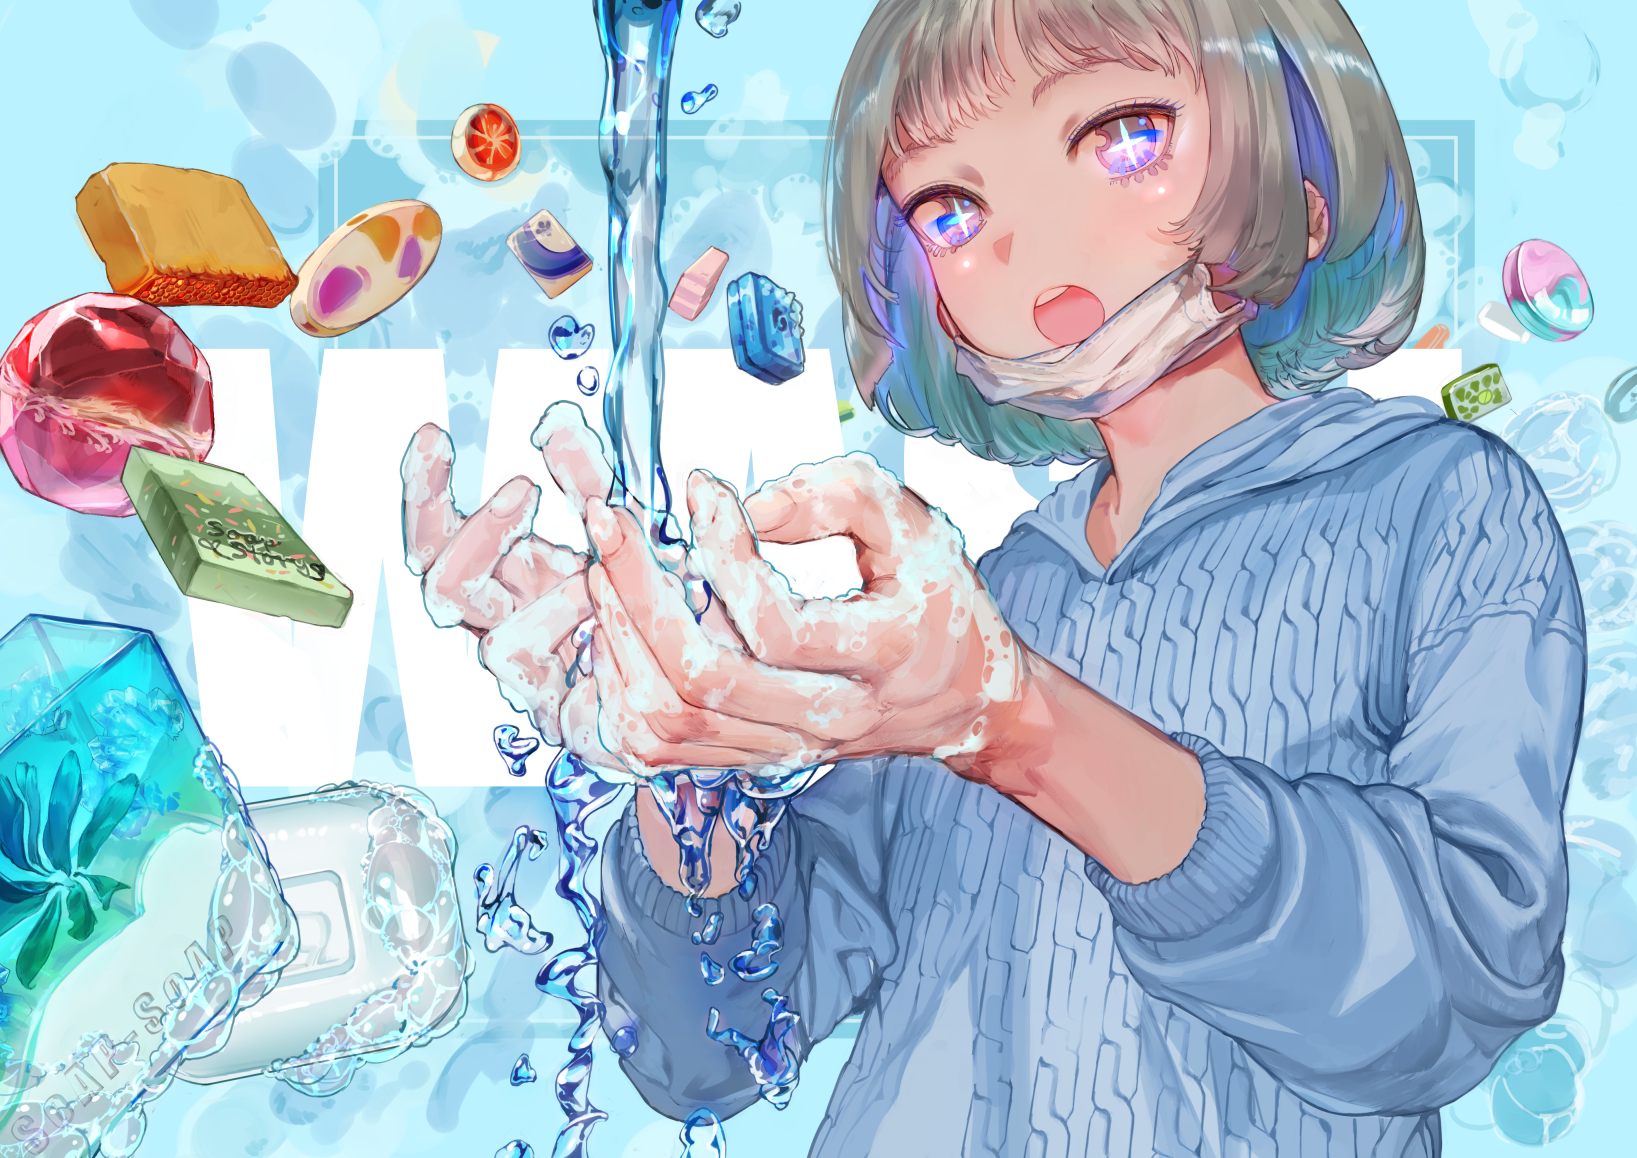 Anime Anime Girls Water Soap Mask Blonde Short Hair Open Mouth Candy Bubble Baths Washing 1637x1158